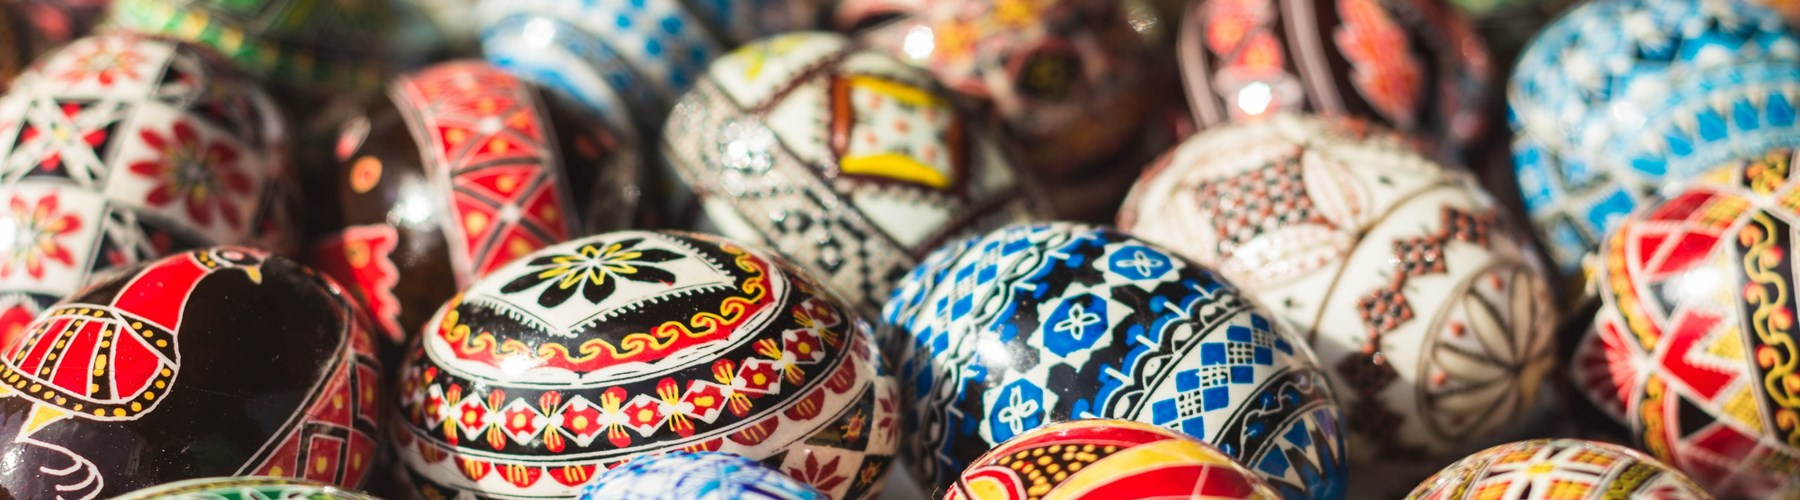 Multi-coloured hand-painted rustic Easter eggs